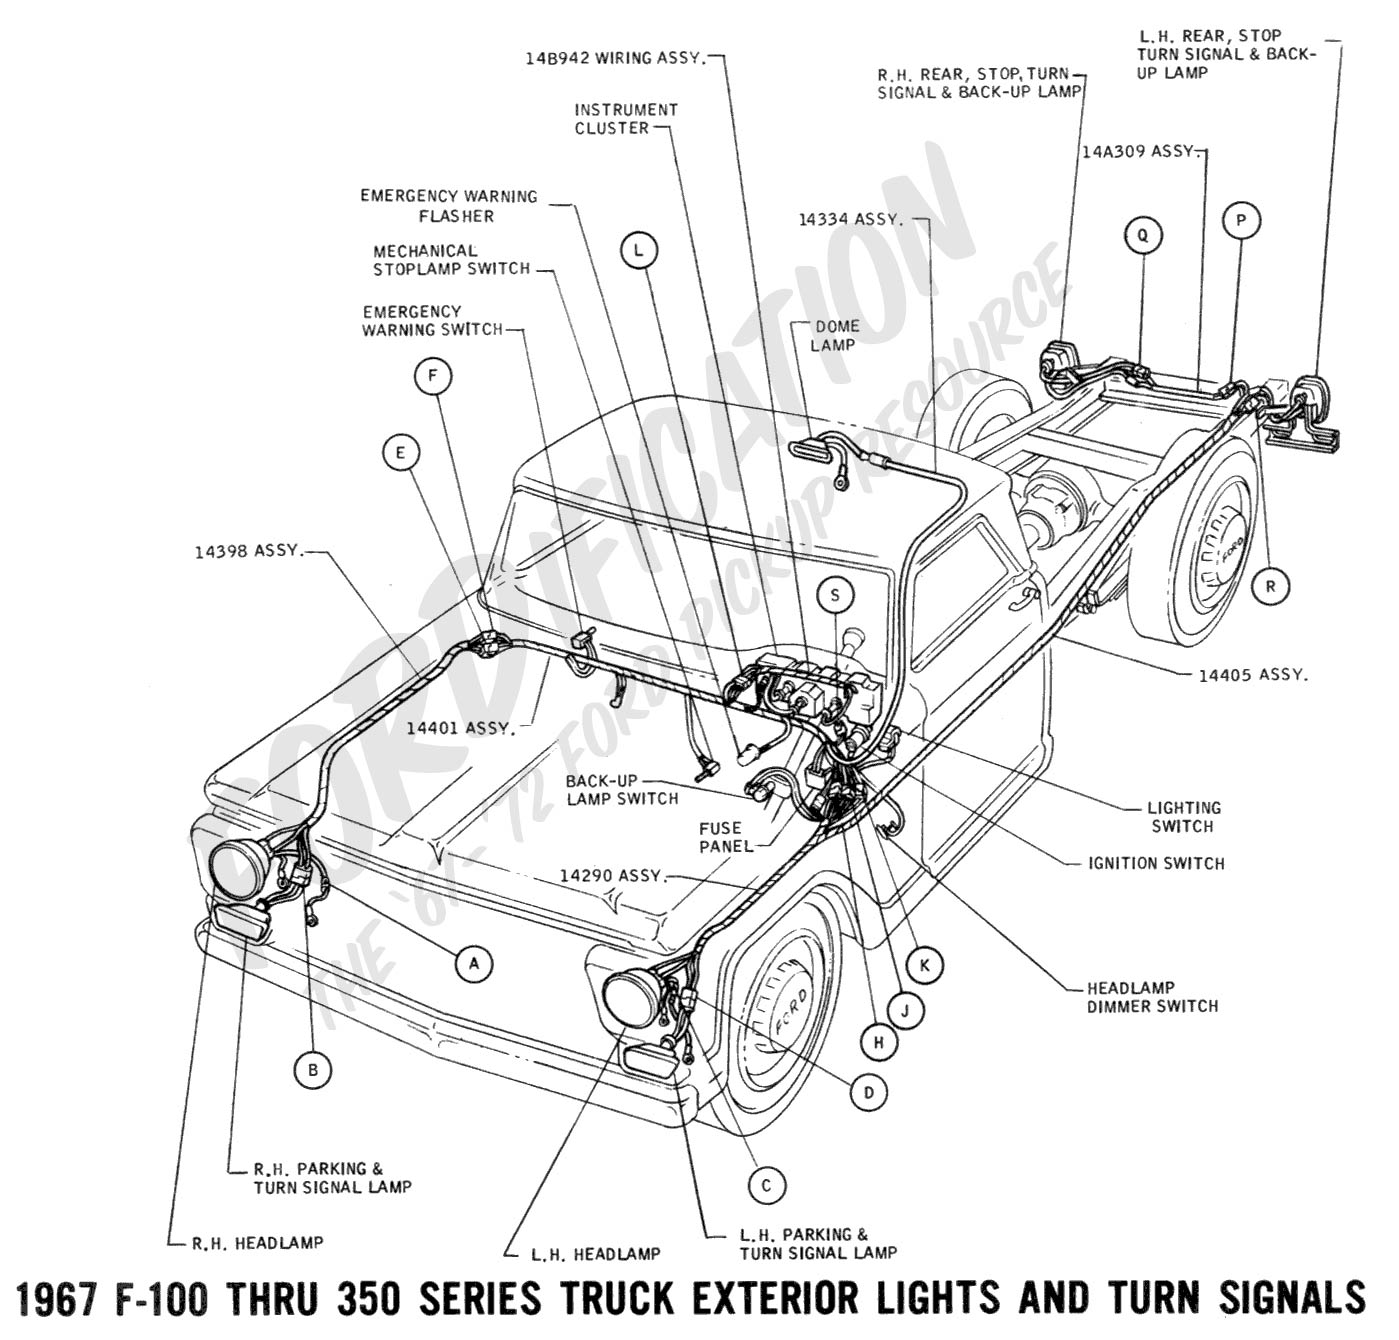 wiring 1967extlights01 ford truck technical drawings and schematics section h wiring Ford F 150 Transfer Case Diagram at bayanpartner.co